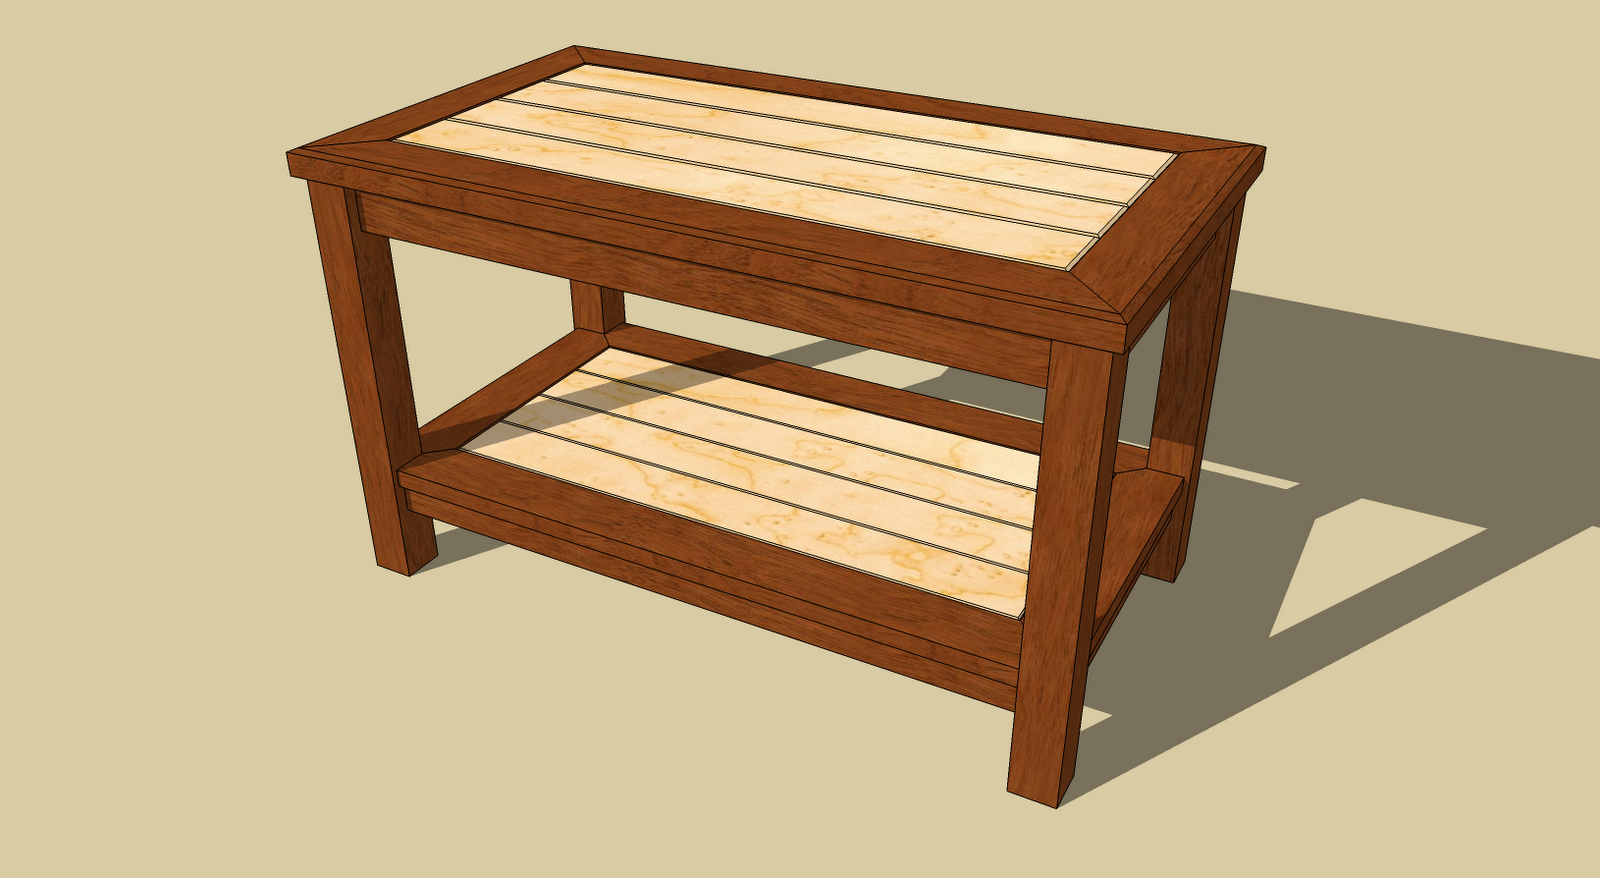 Woodworking Project Plans - DIY Woodworking Projects